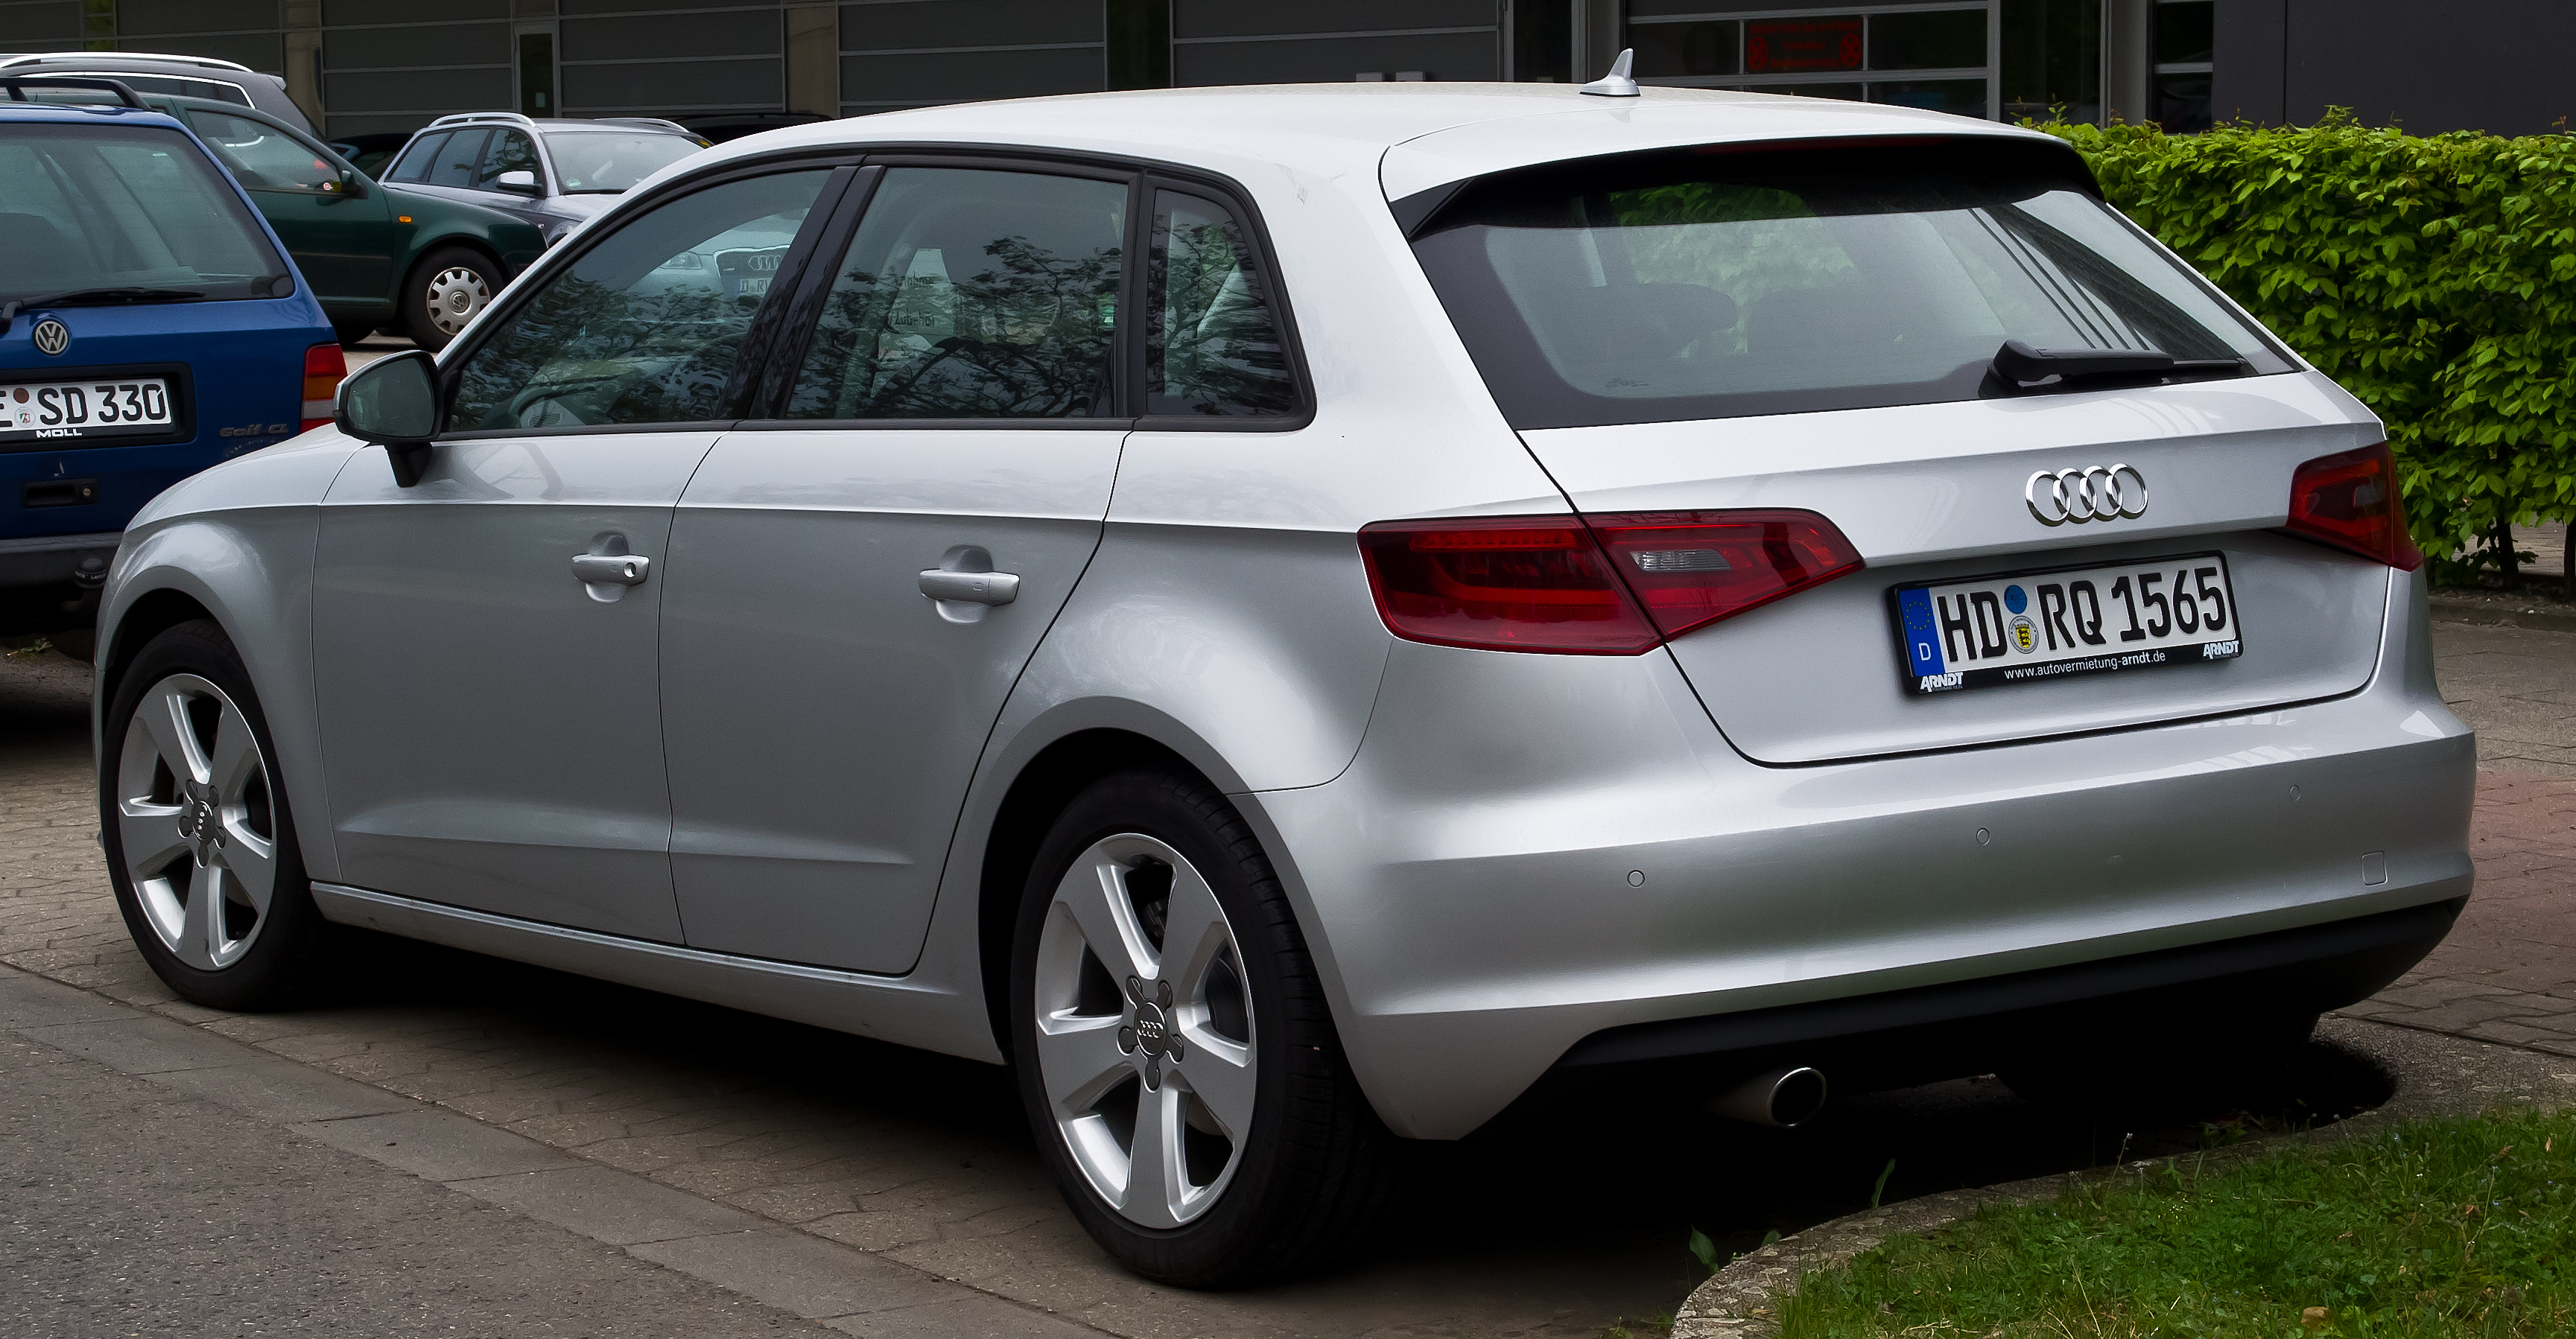 file audi a3 sportback 1 6 tdi ambition 8v heckansicht 6 april 2014 d. Black Bedroom Furniture Sets. Home Design Ideas